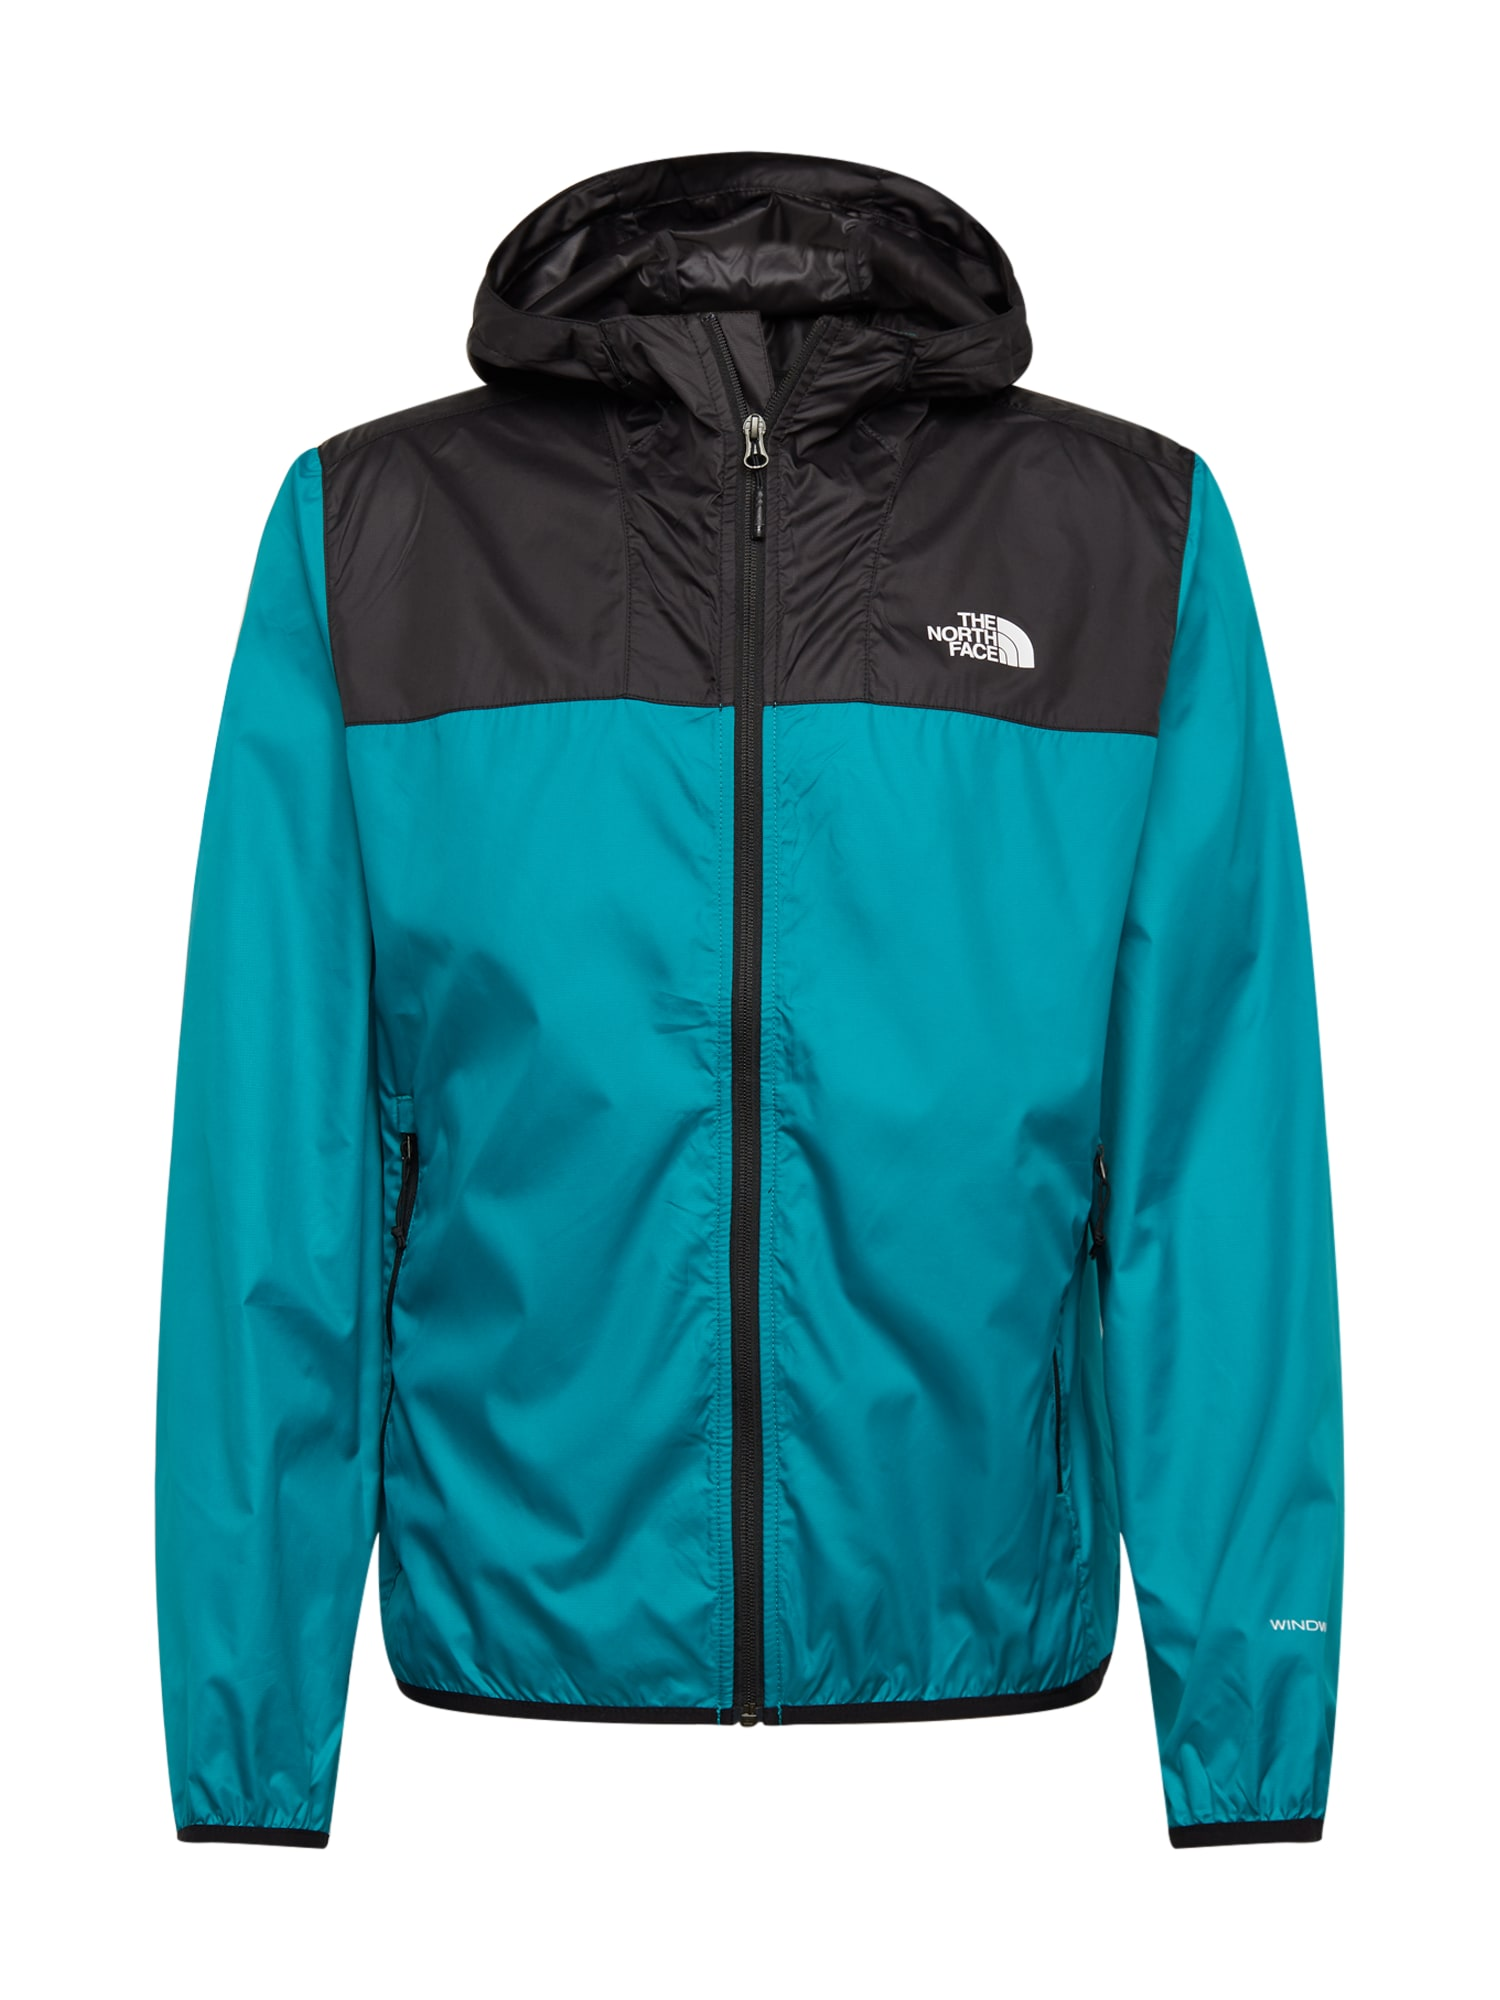 THE NORTH FACE Přechodná bunda CYCLONE 2.0 černá petrolejová The North Face